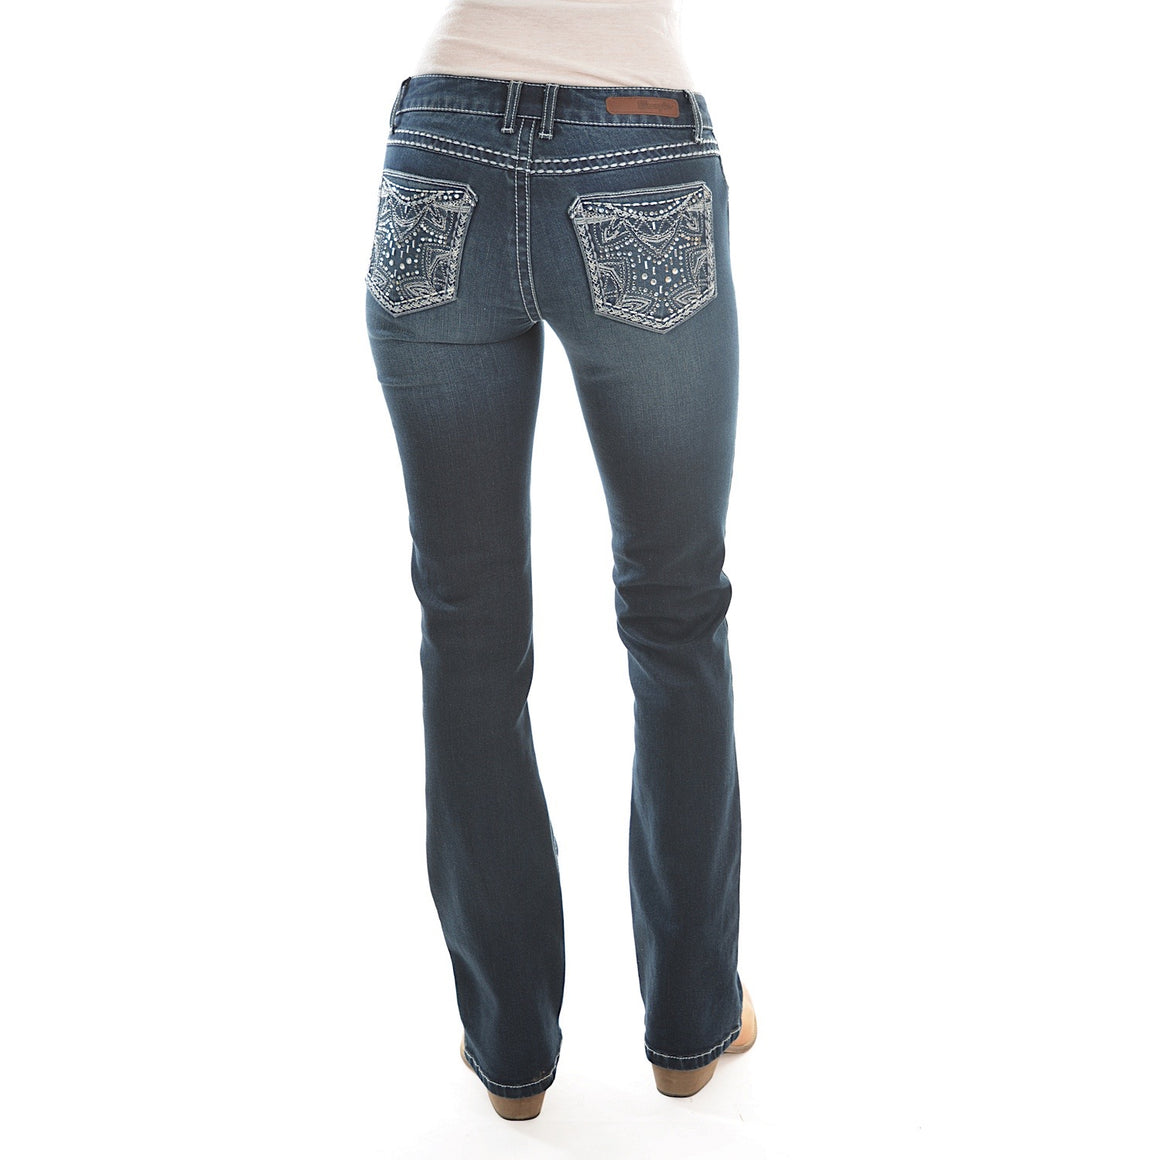 Wrangler Rock 47 Womens Sits Above Hip Jean 34 Leg Midnight